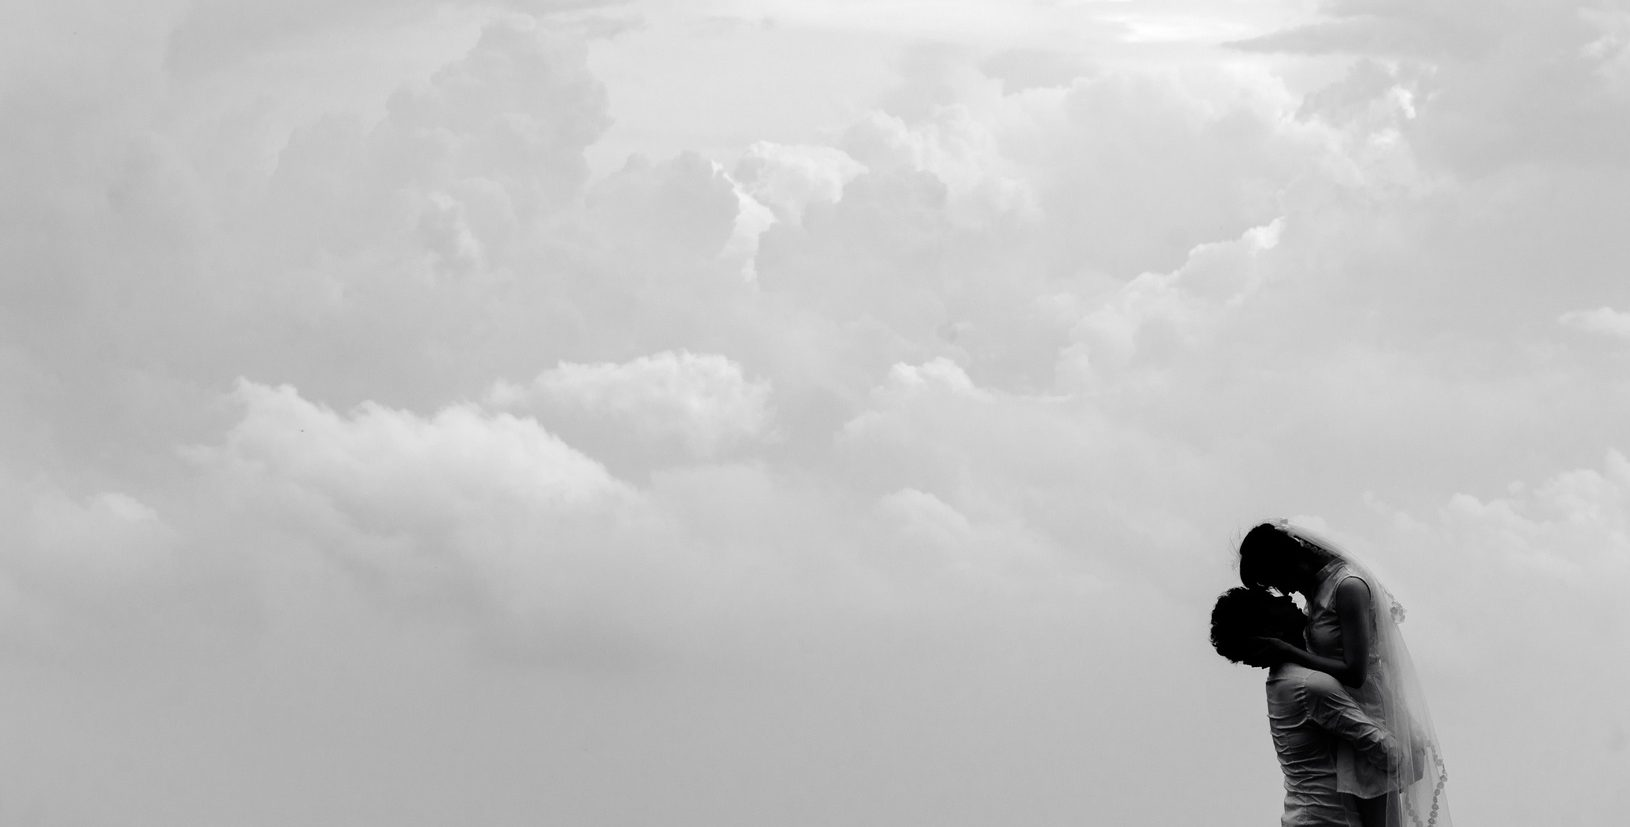 man-landscape-nature-silhouette-cloud-black-and-white-938421-pxhere.com